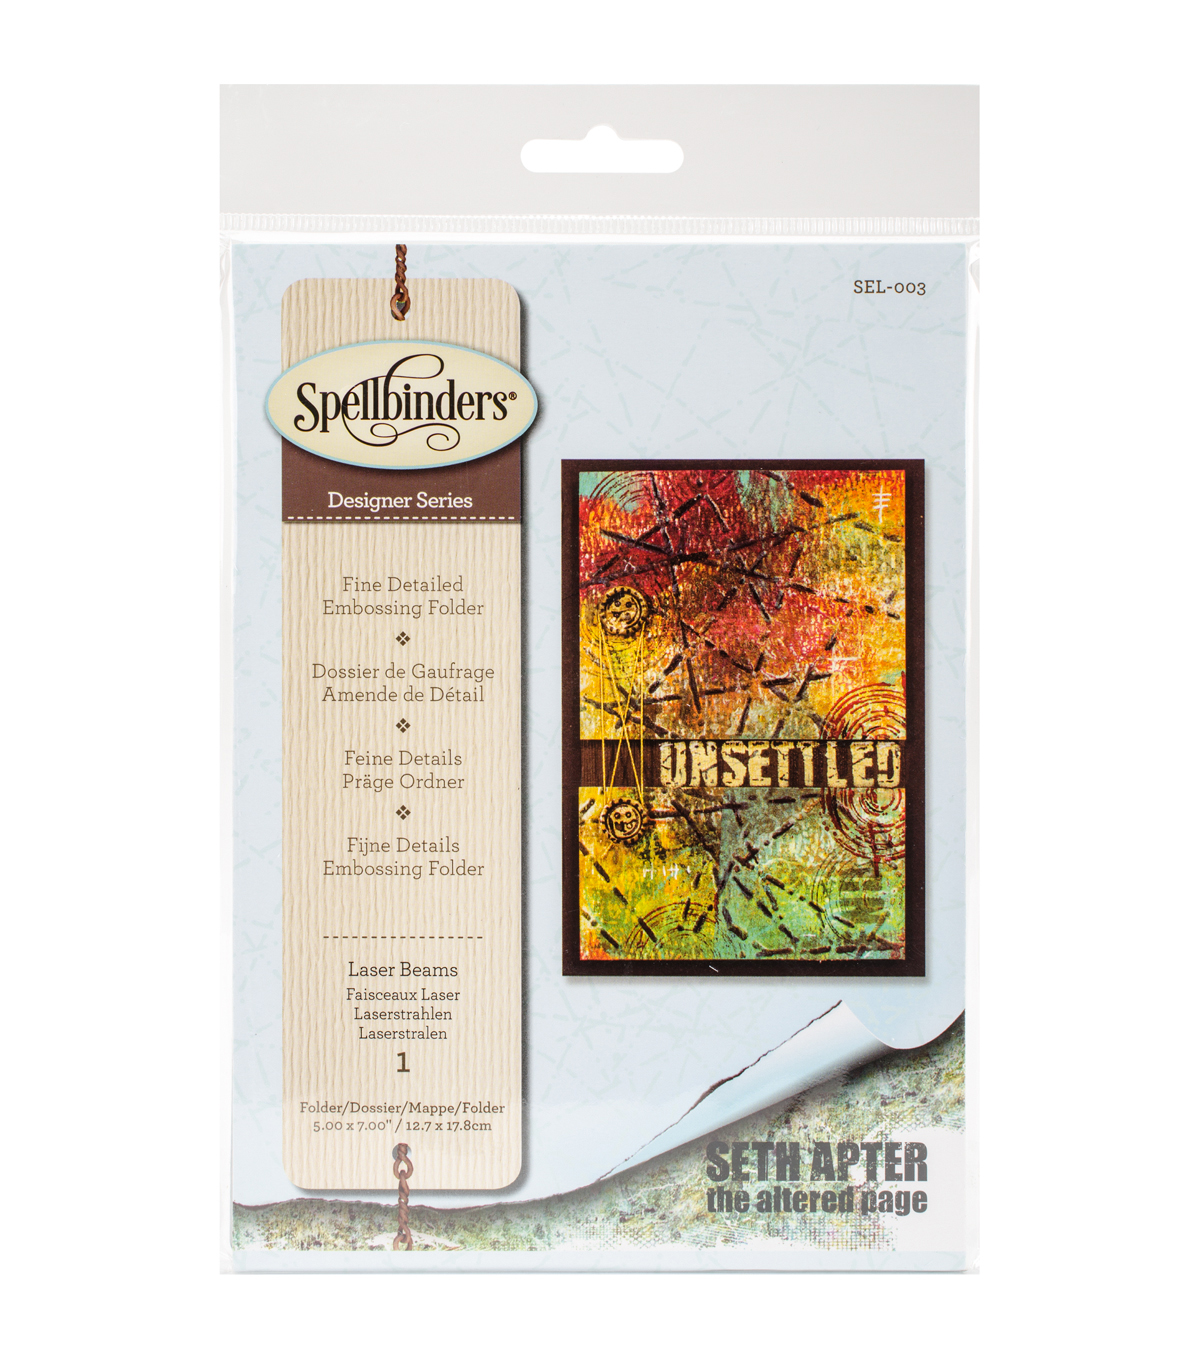 Spellbinders™ Seth Apter Large Embossing Folder-Laser Beams